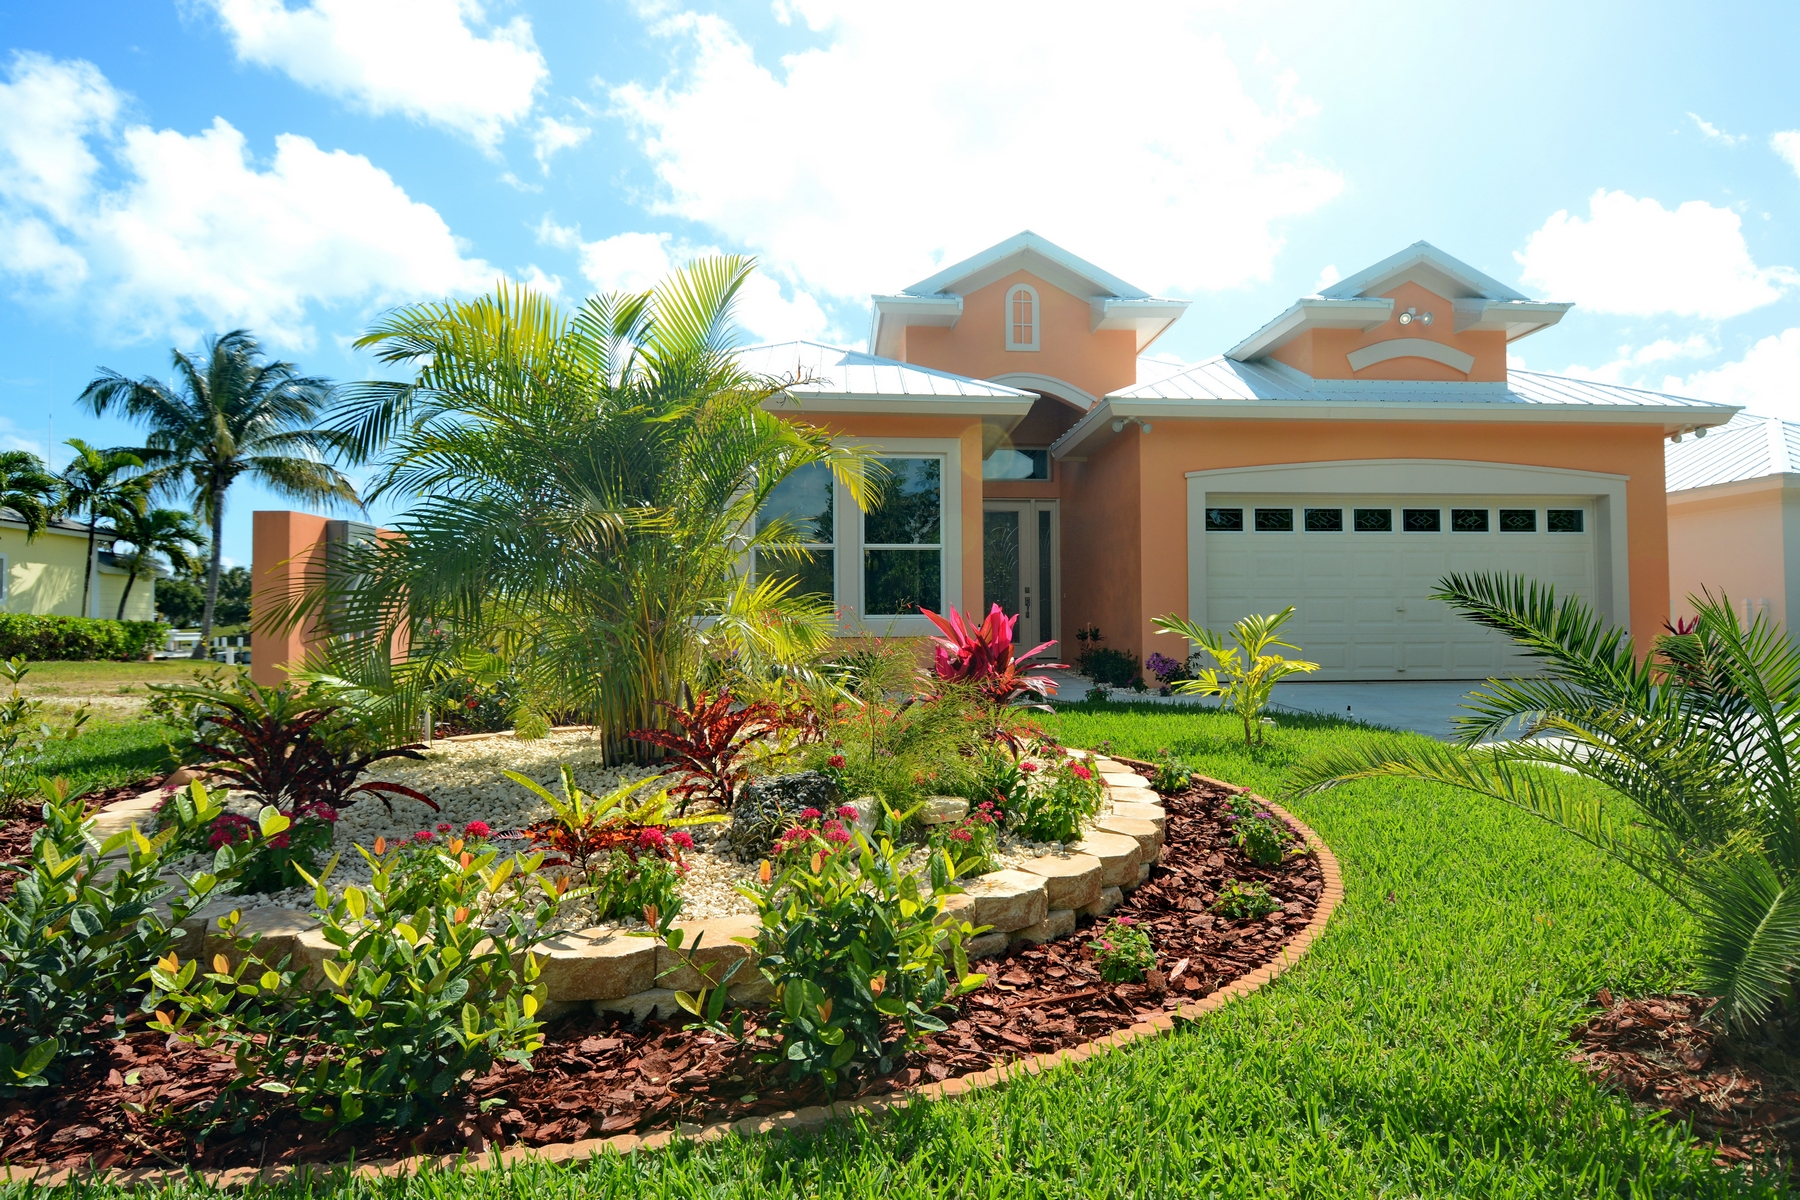 Single Family Home for Sale at Grander Great Abaco Club, Marsh Harbour, Abaco Bahamas